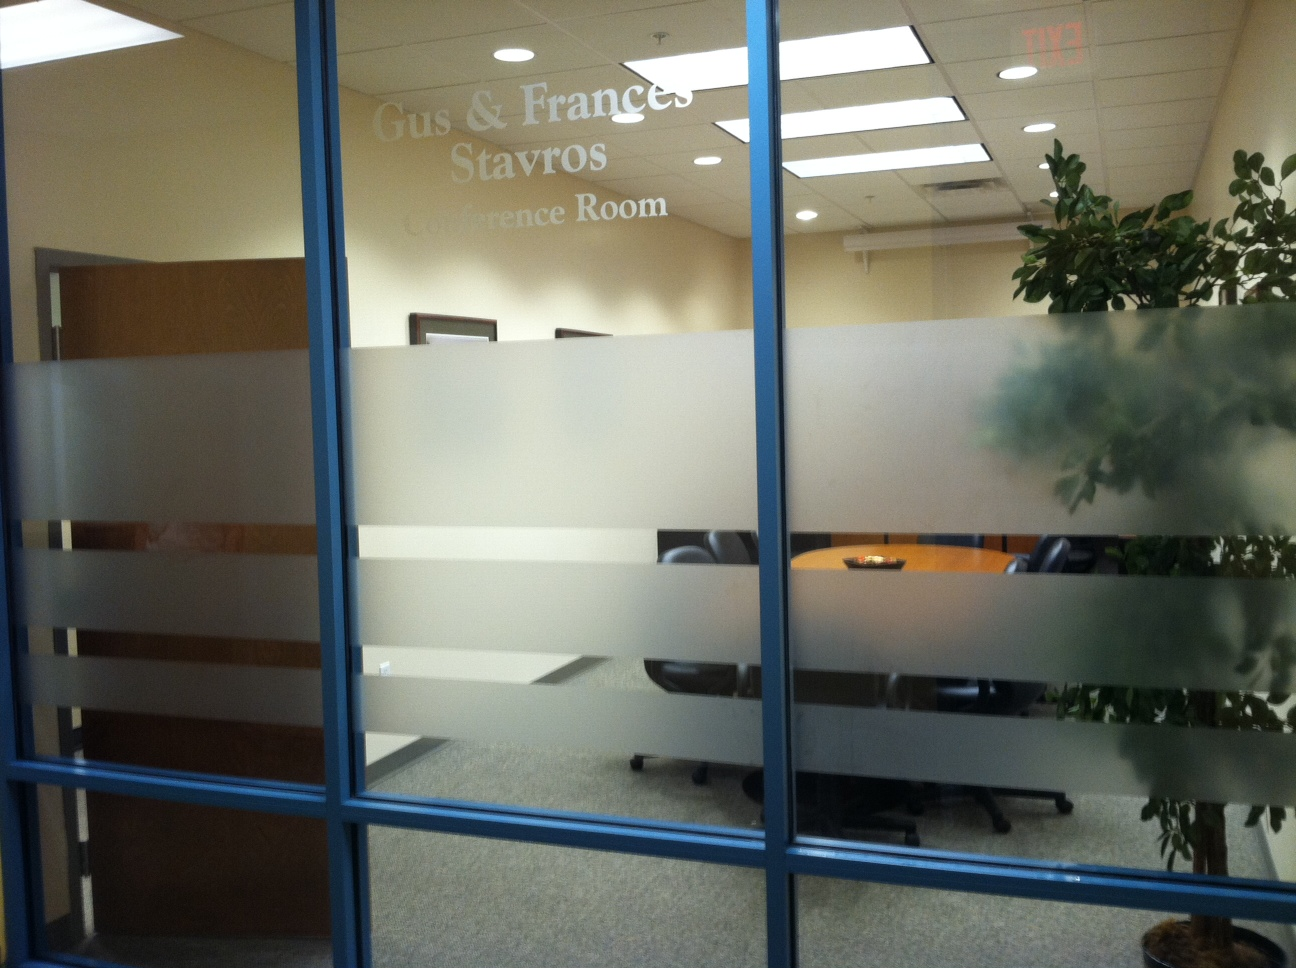 Etched vinyl in Tampa, FL for Window Signage